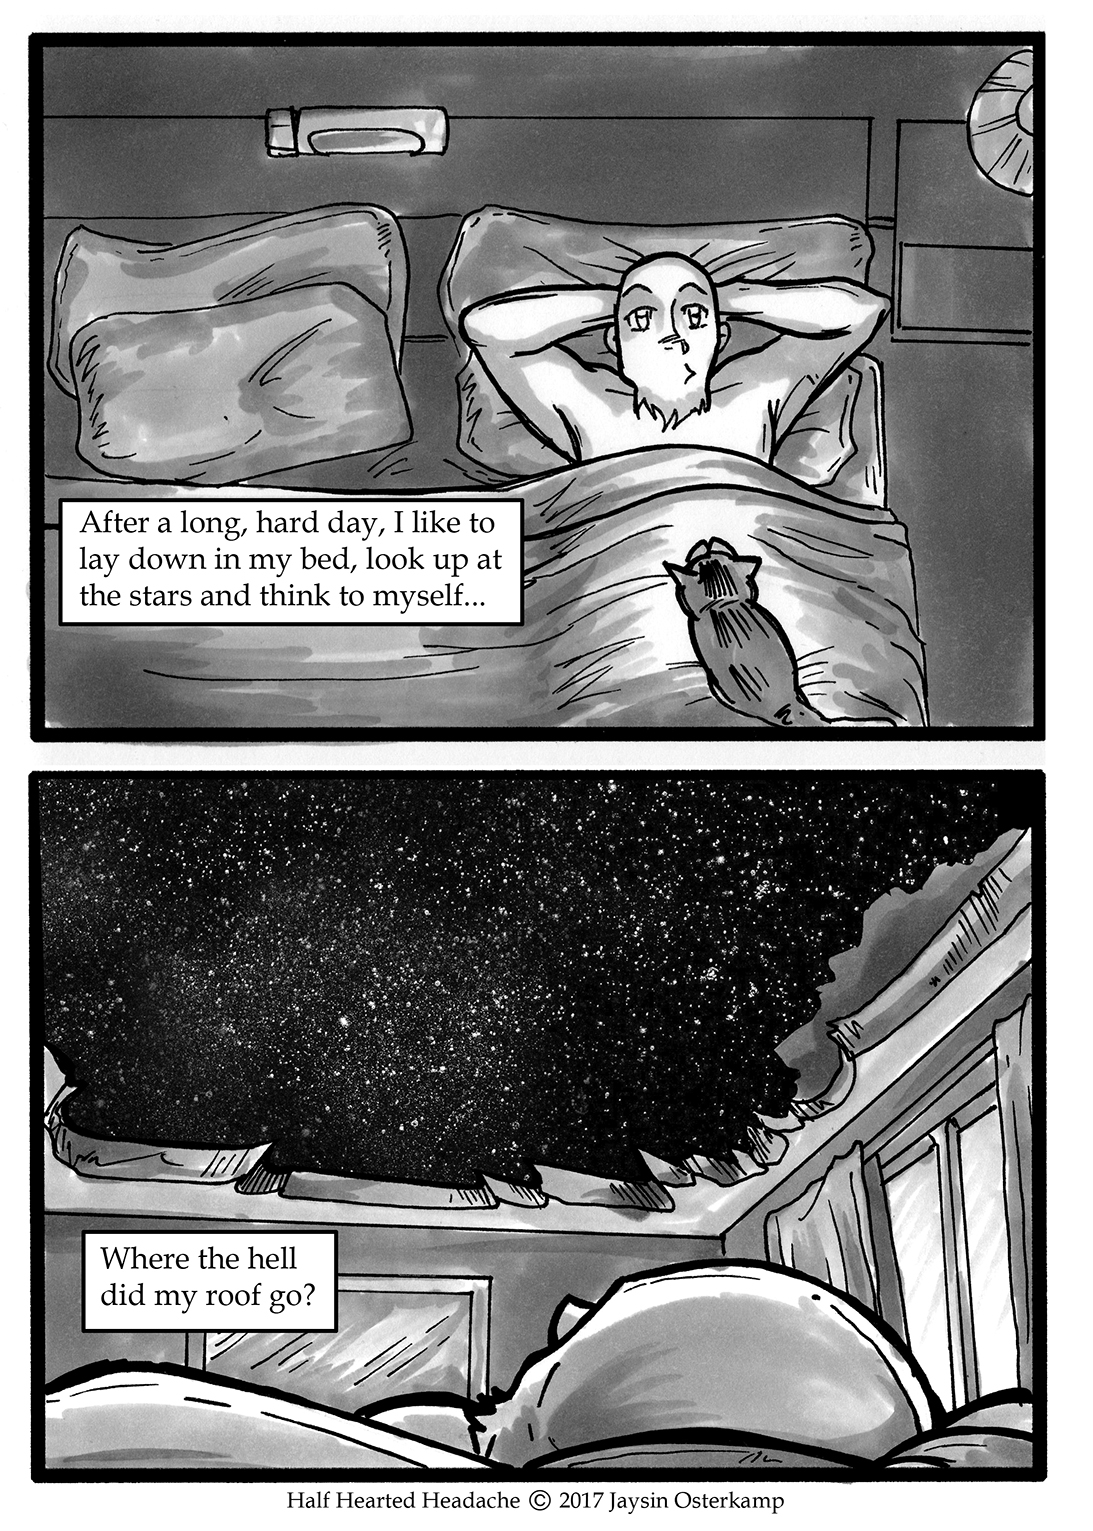 118 – Looking up at the stars